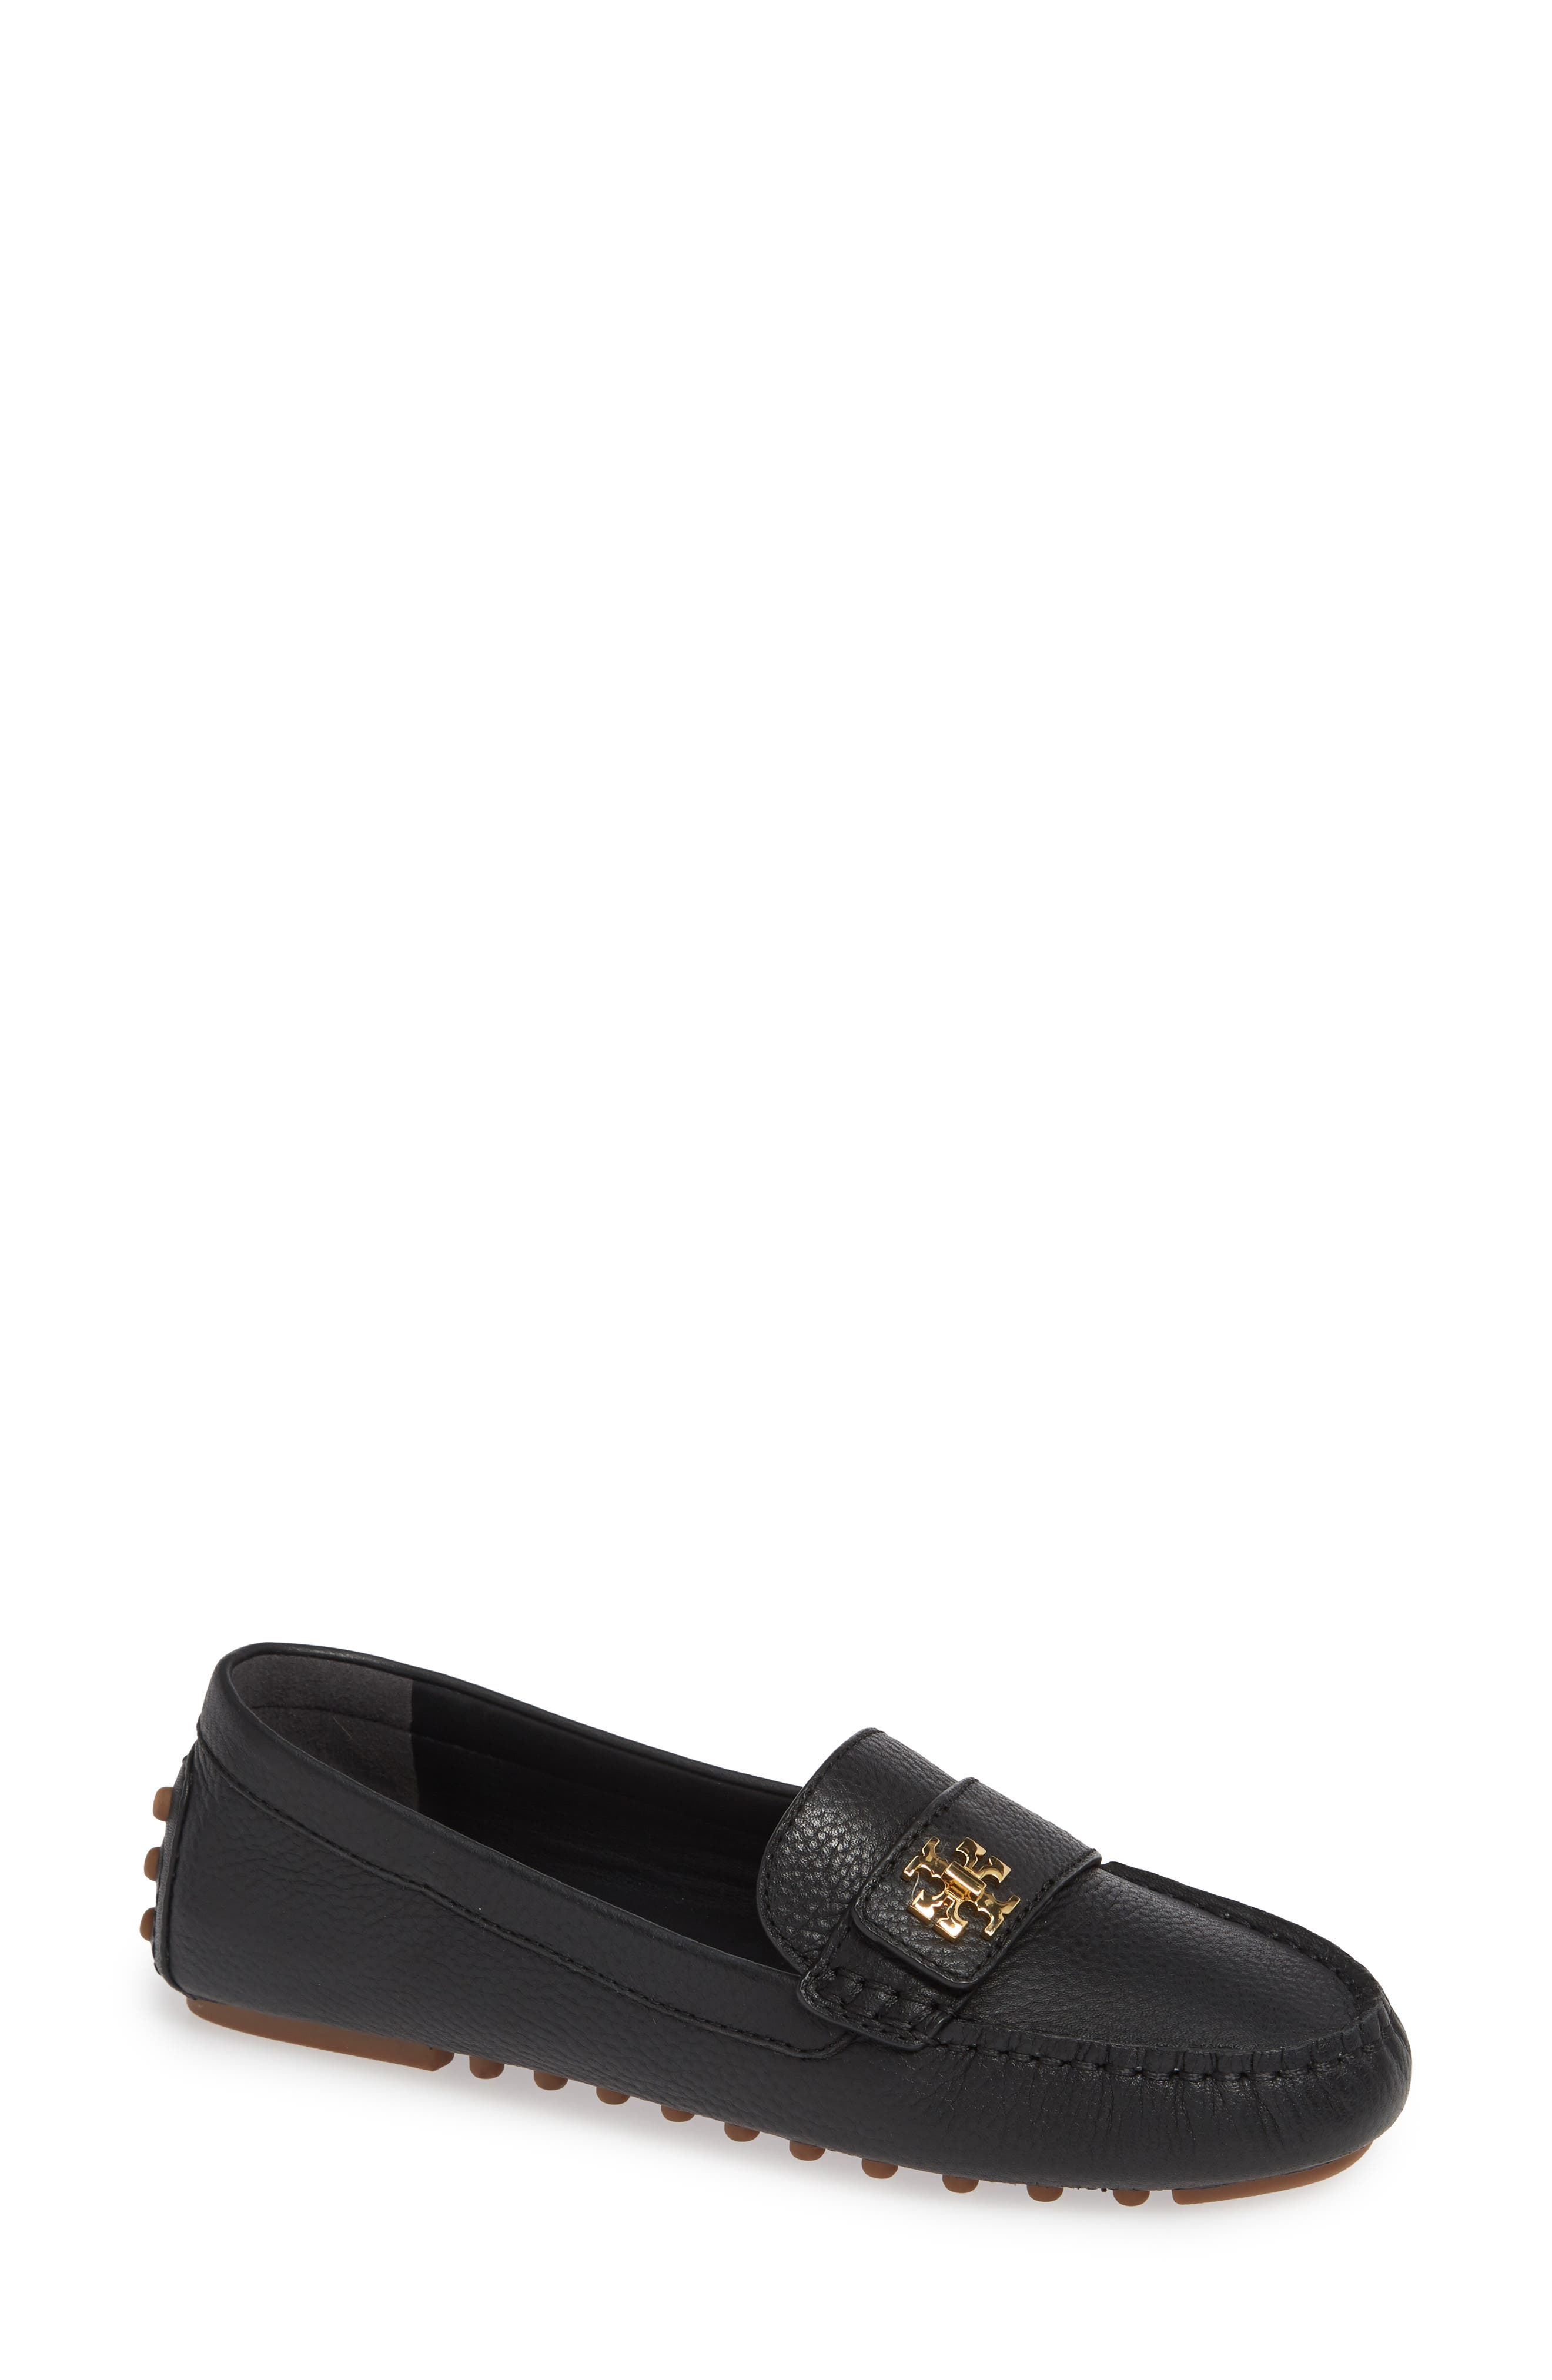 TORY BURCH, Kira Driving Loafer, Main thumbnail 1, color, PERFECT BLACK